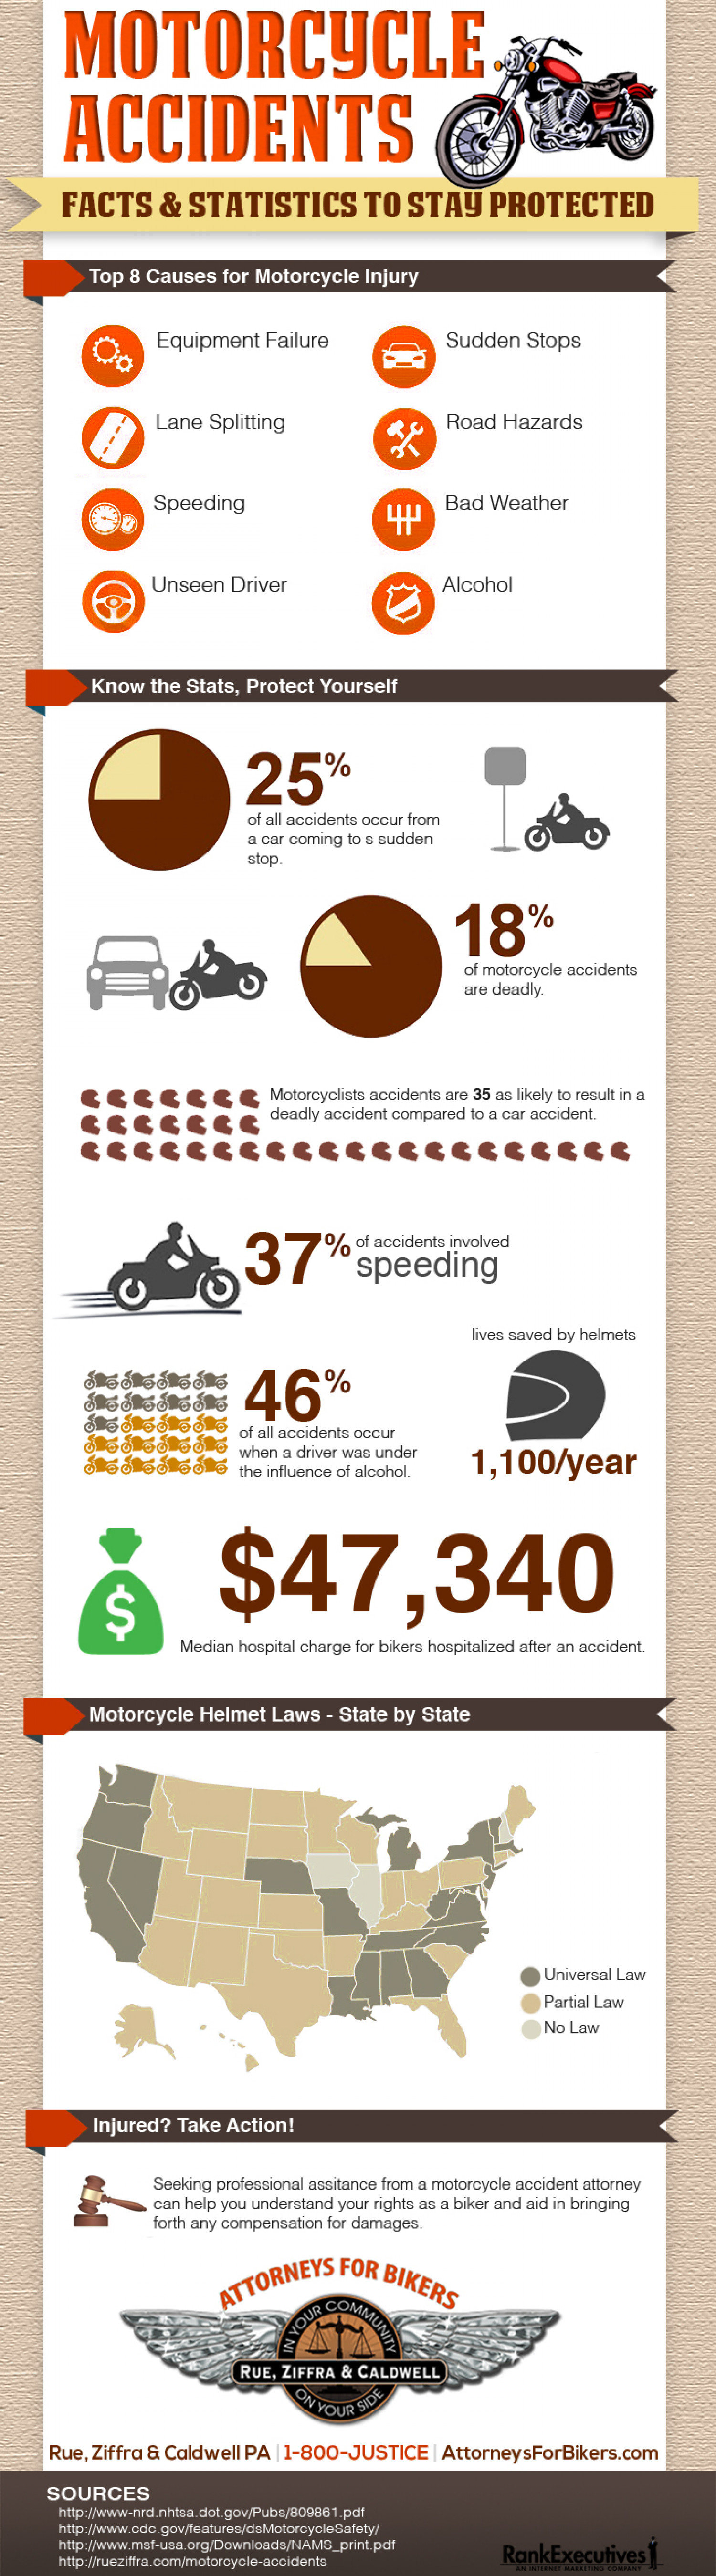 Motorcycle Accidents Infographic